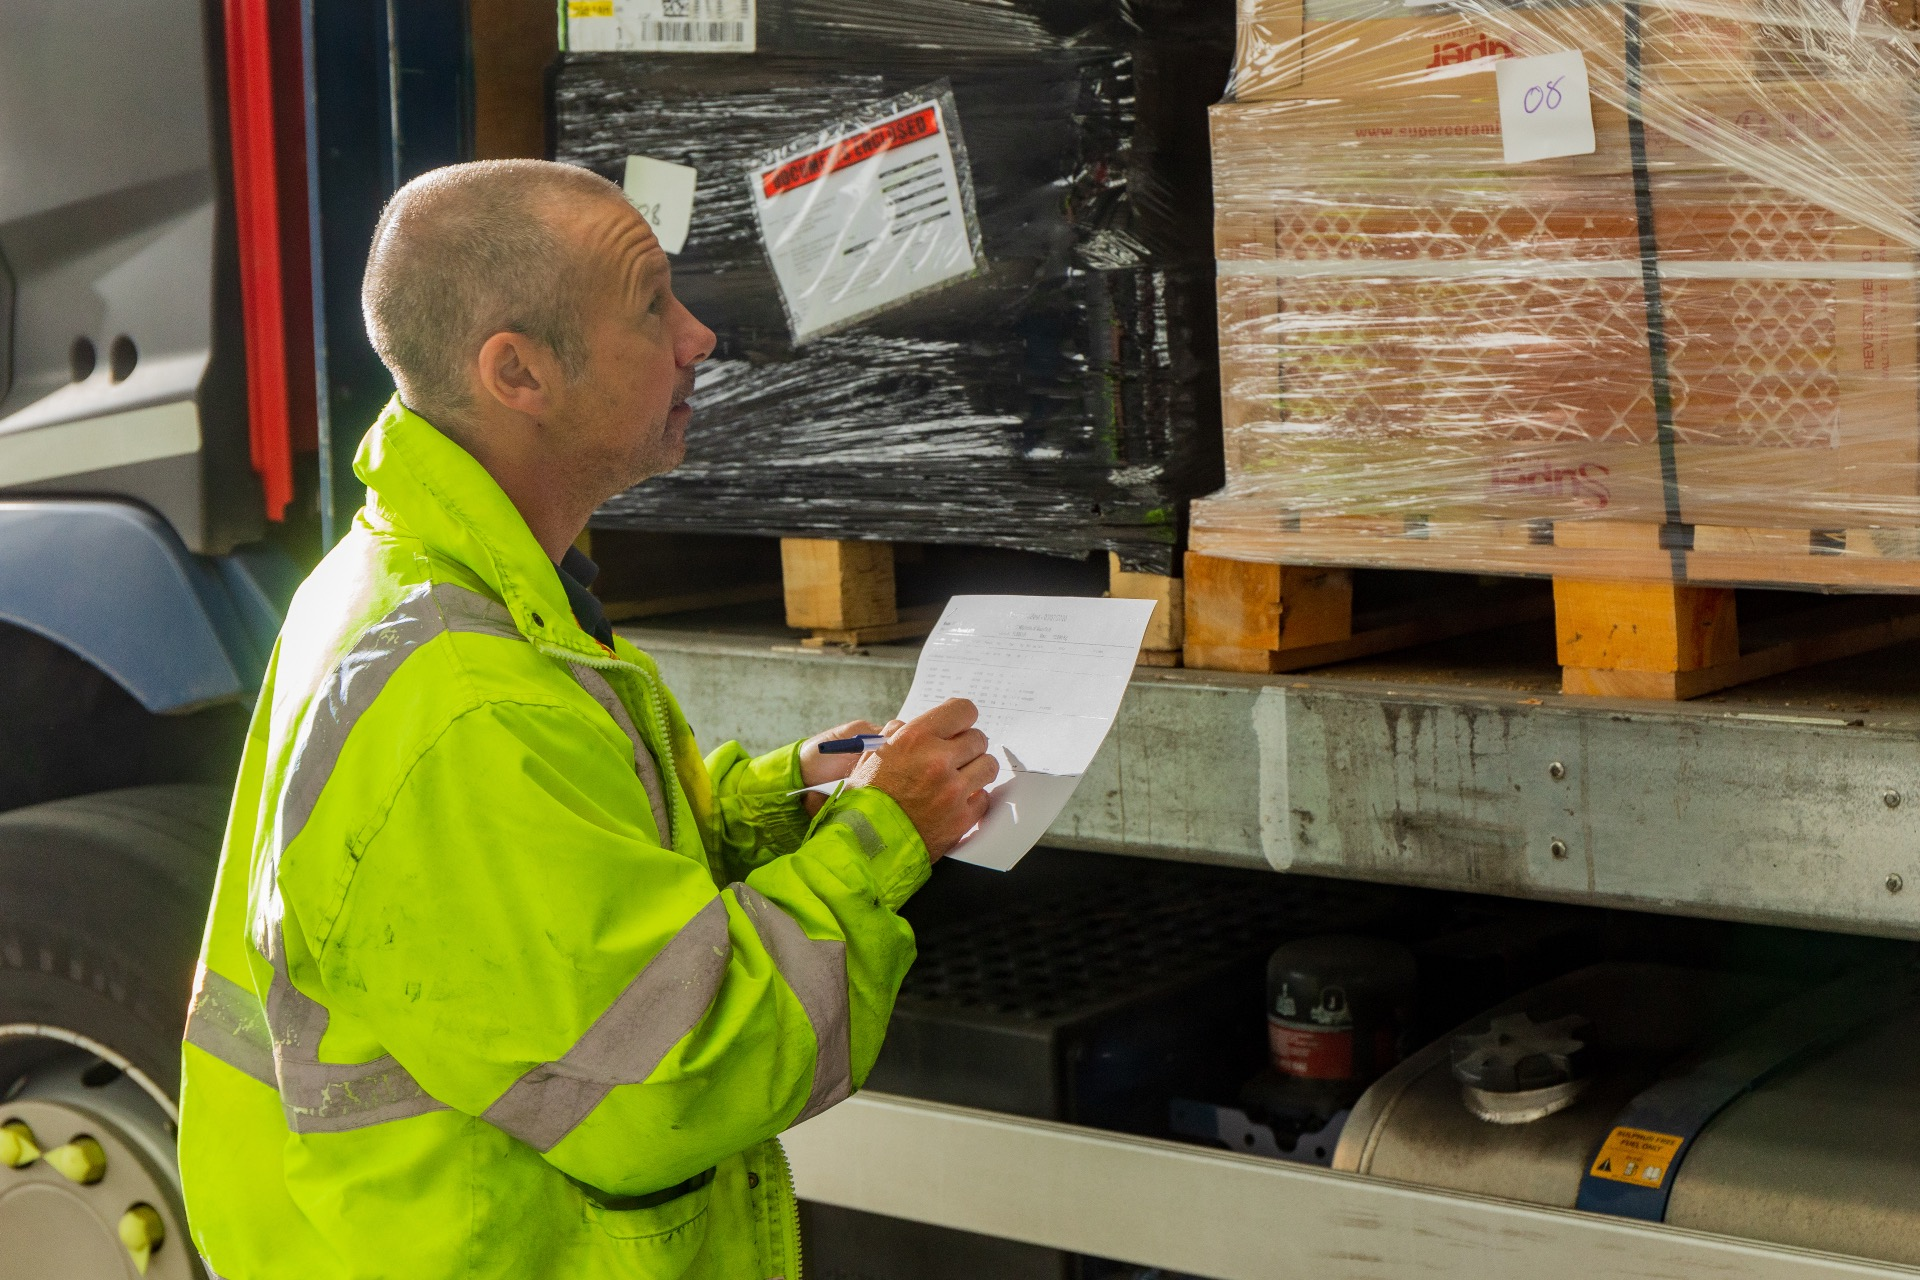 Mitchells can deliver, quarter, half or full pallets across the UK & Europe